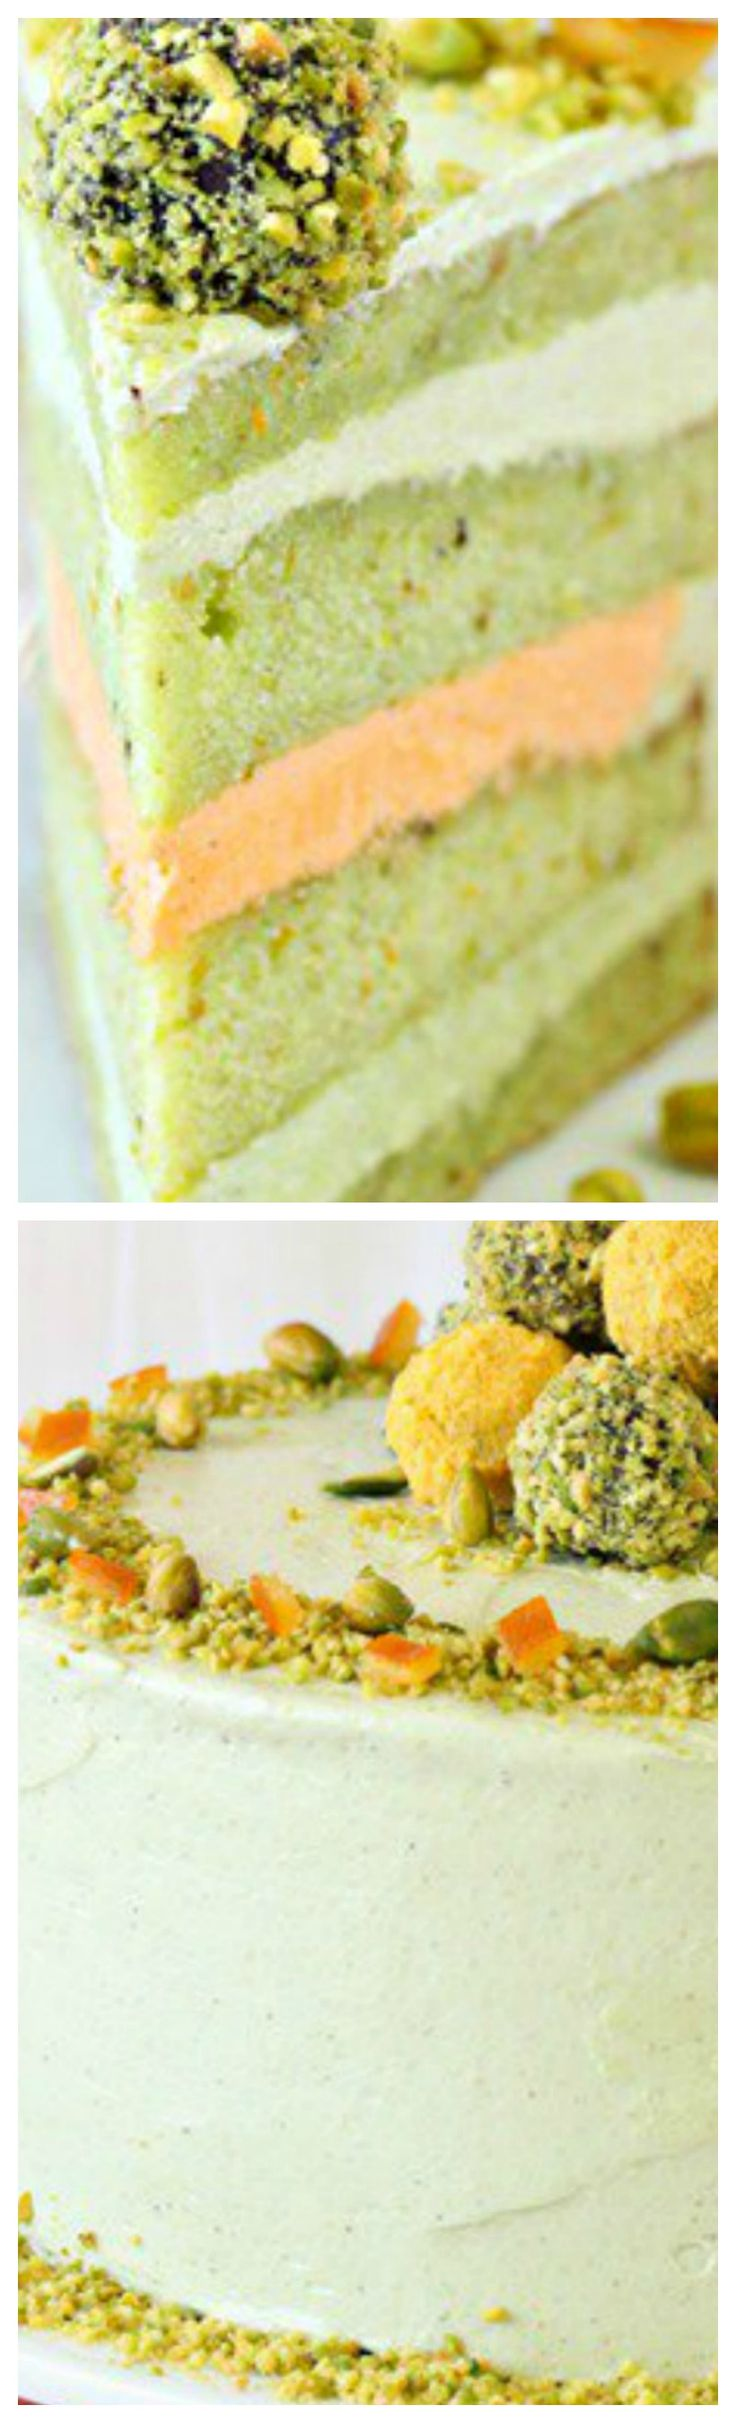 Pistachio Orange Cake ~ This cake has pistachio cake layers, rich pistachio buttercream, and a hidden layer of orange frosting!